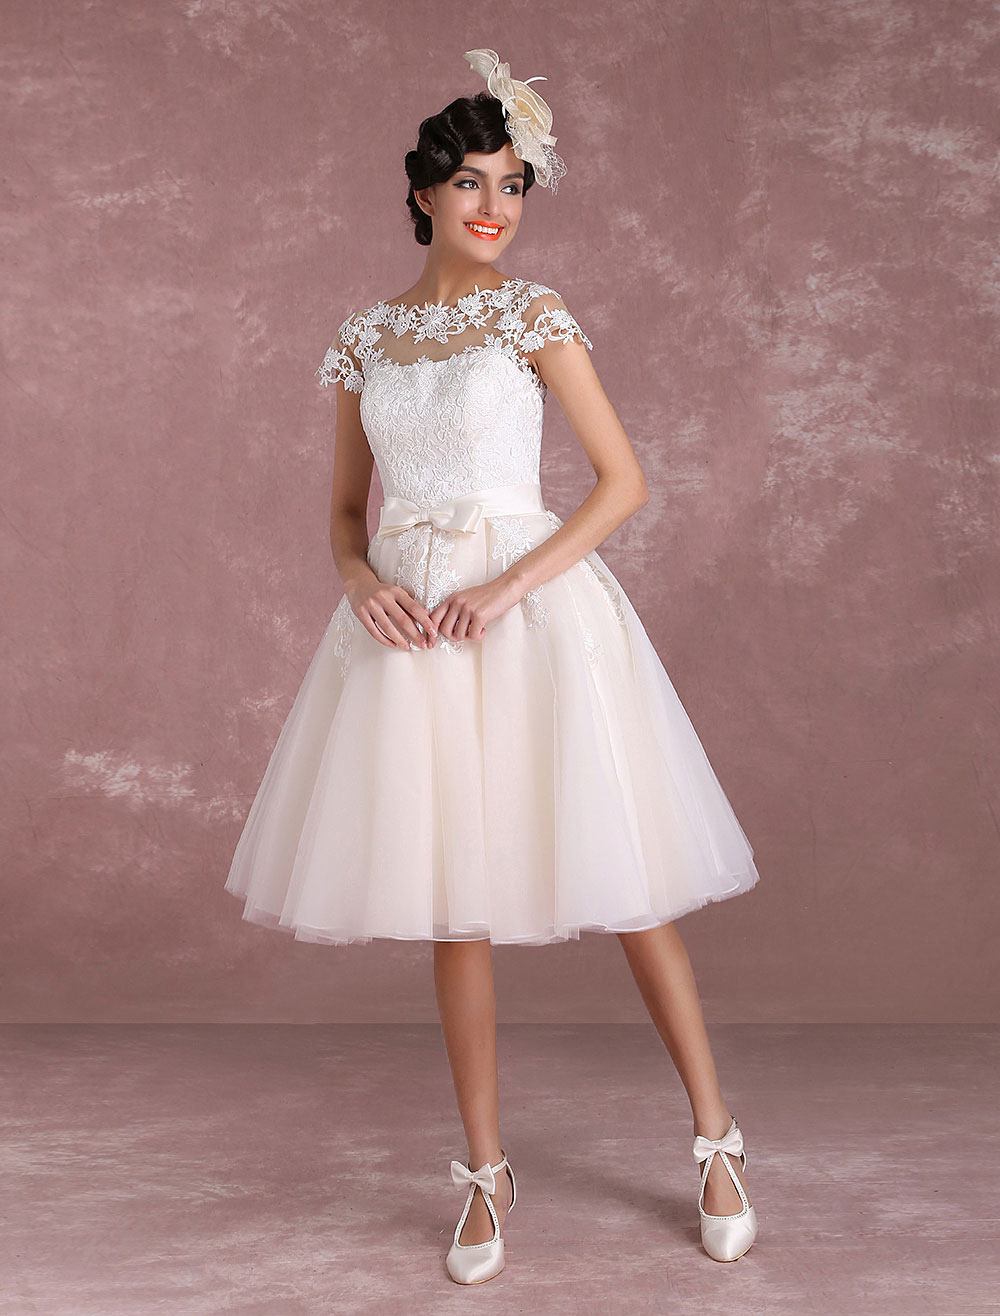 Vintage Wedding Dresses Short Lace Applique Bridal Gown Illusion Bow ...